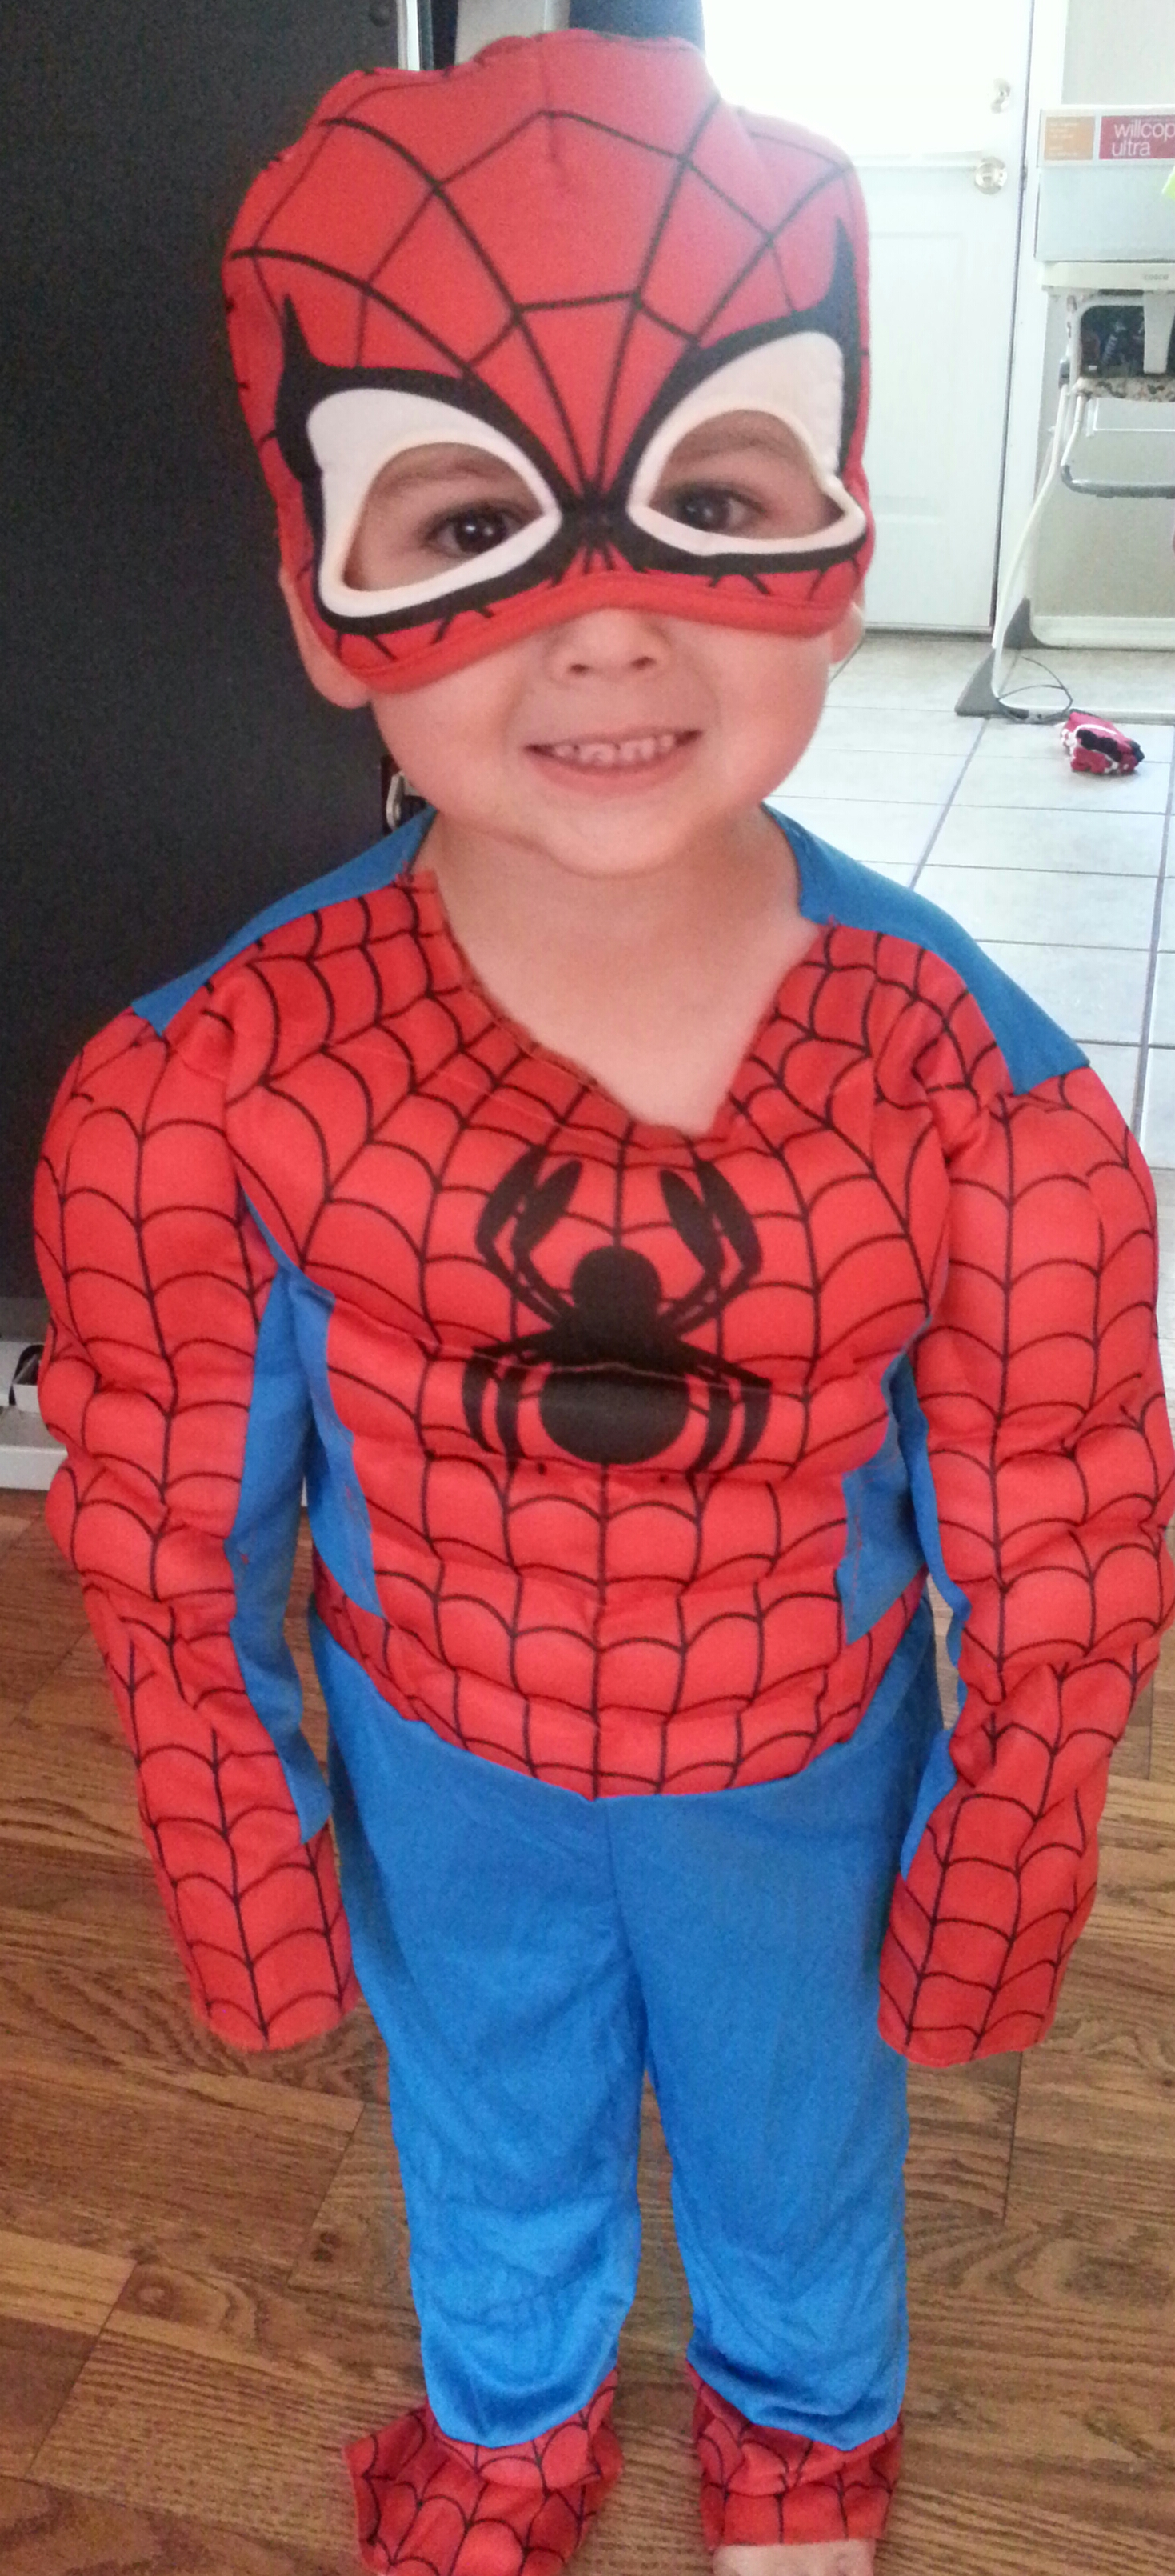 cutest Spiderman ever!